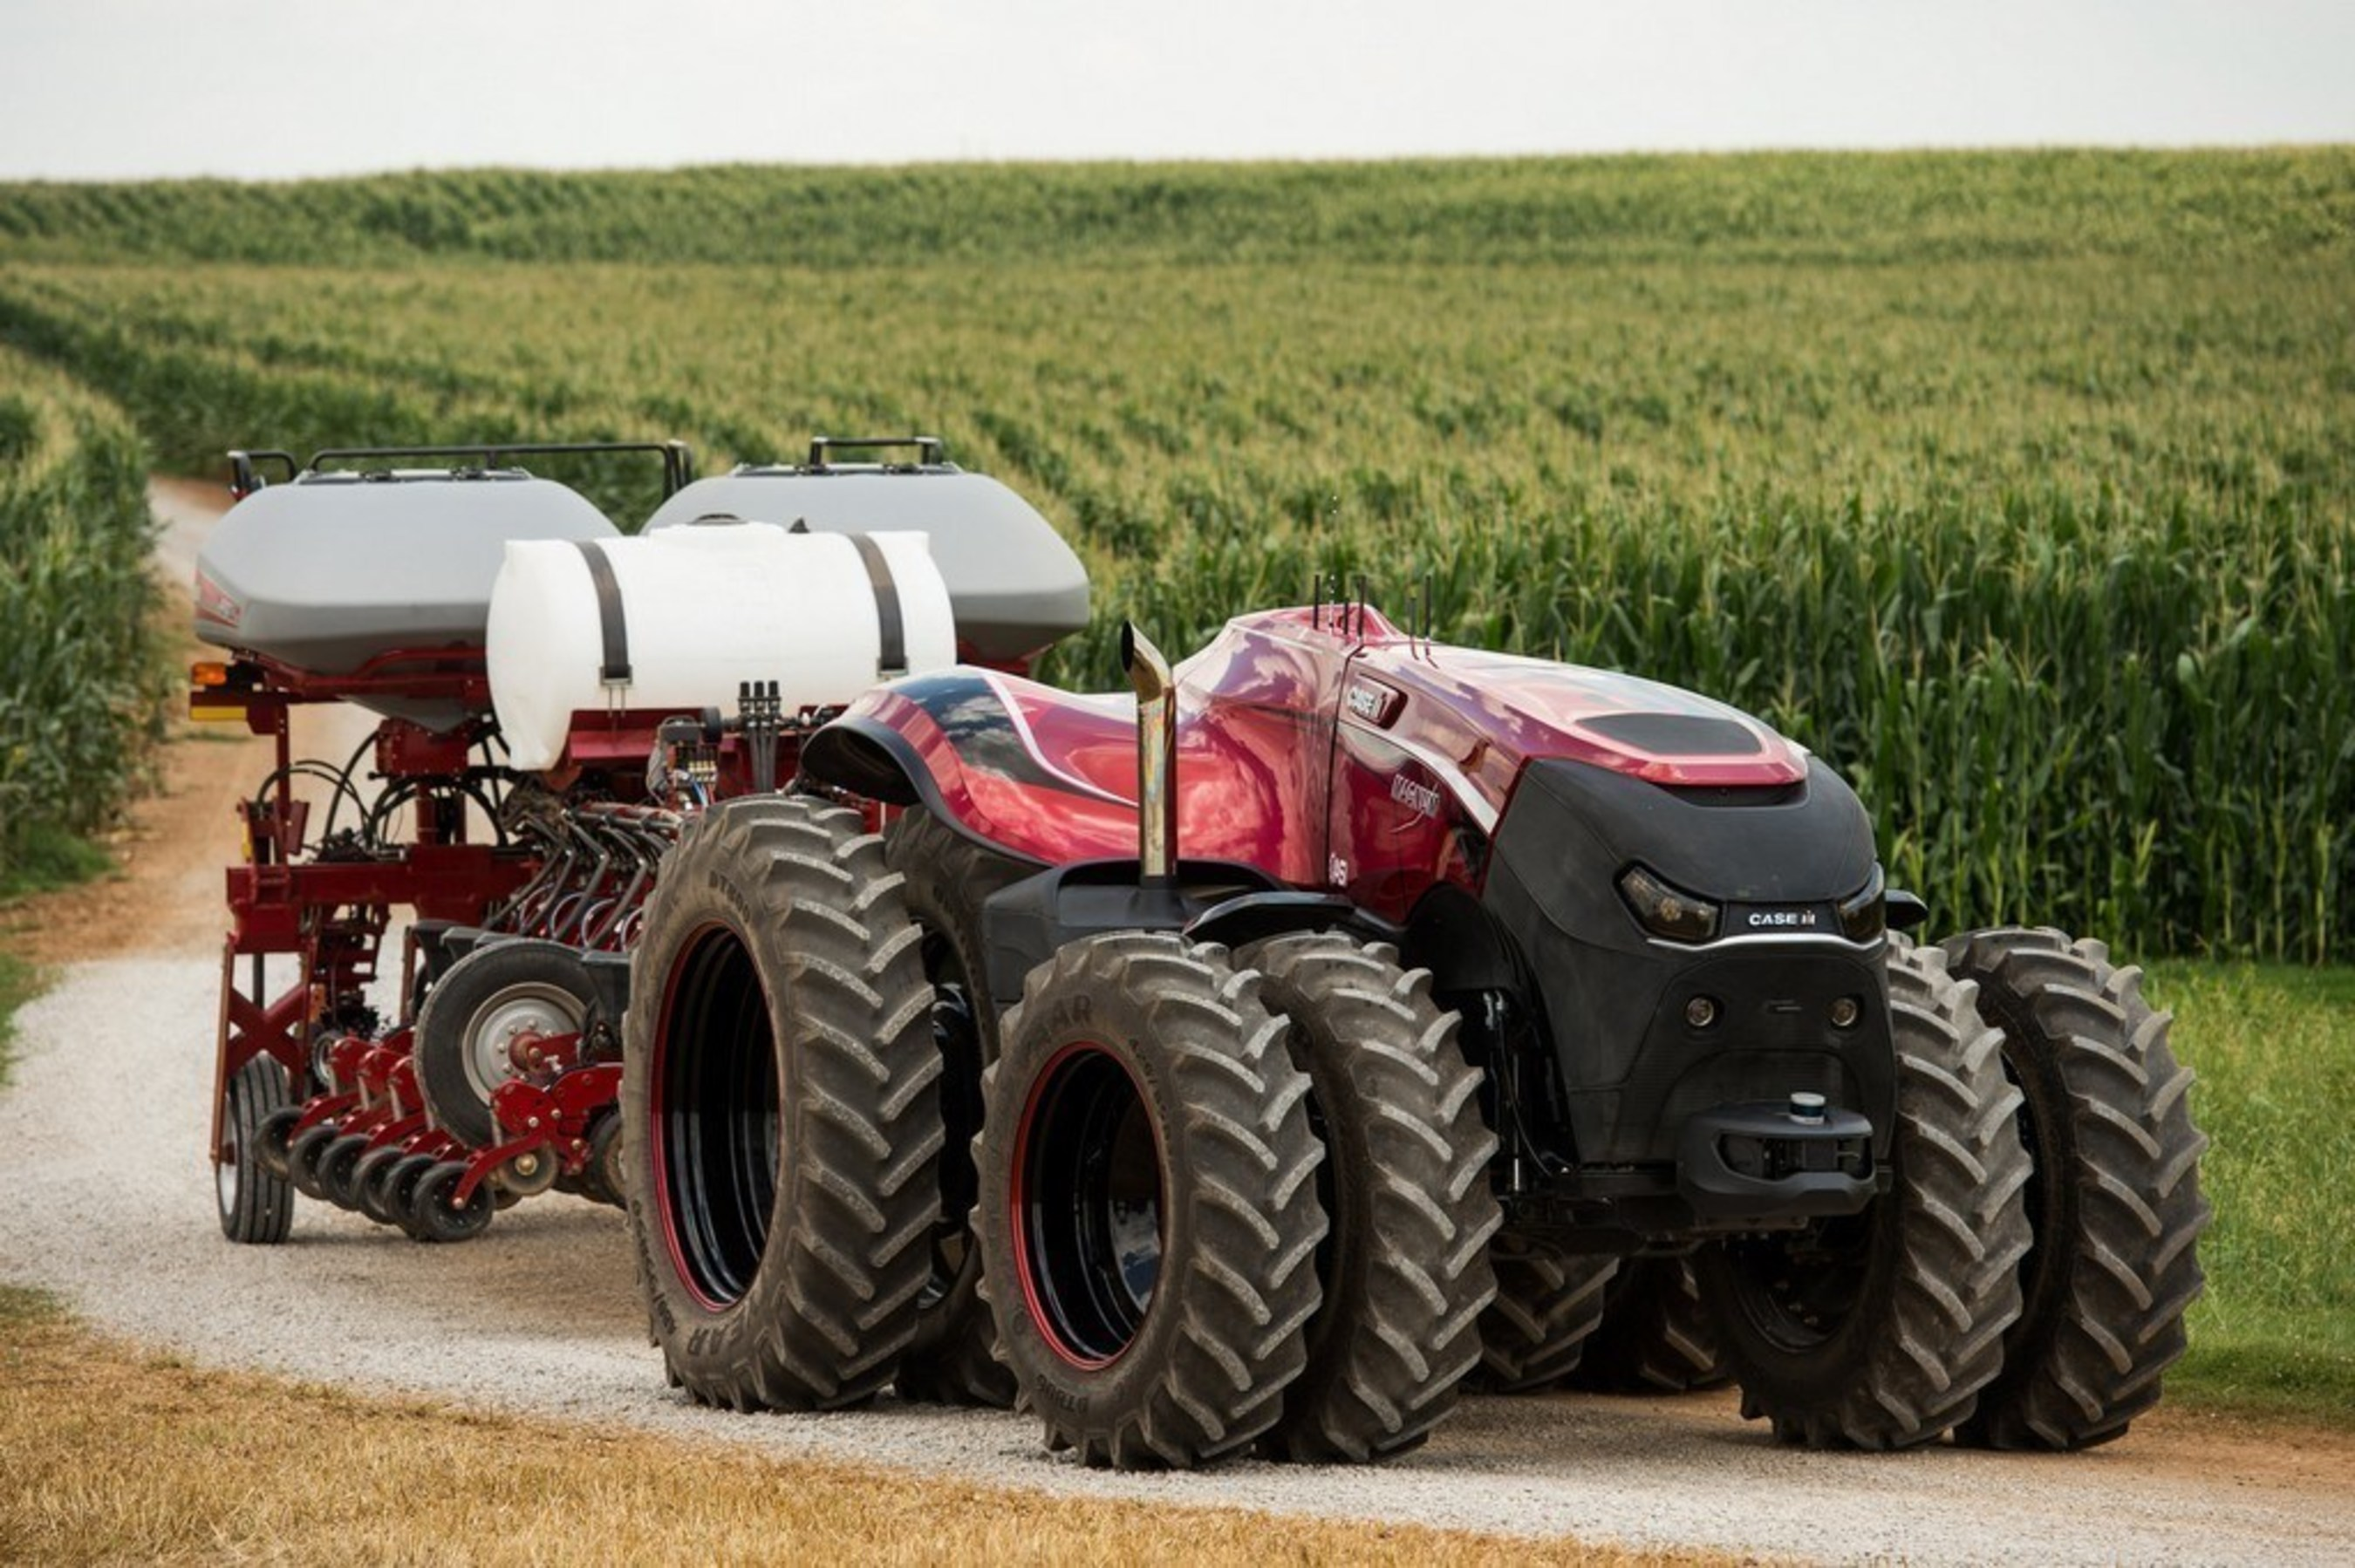 Case IH Magnum Autonomous Concept Tractor on the road with the Case IH Early Riser 2150 Planter in transport position